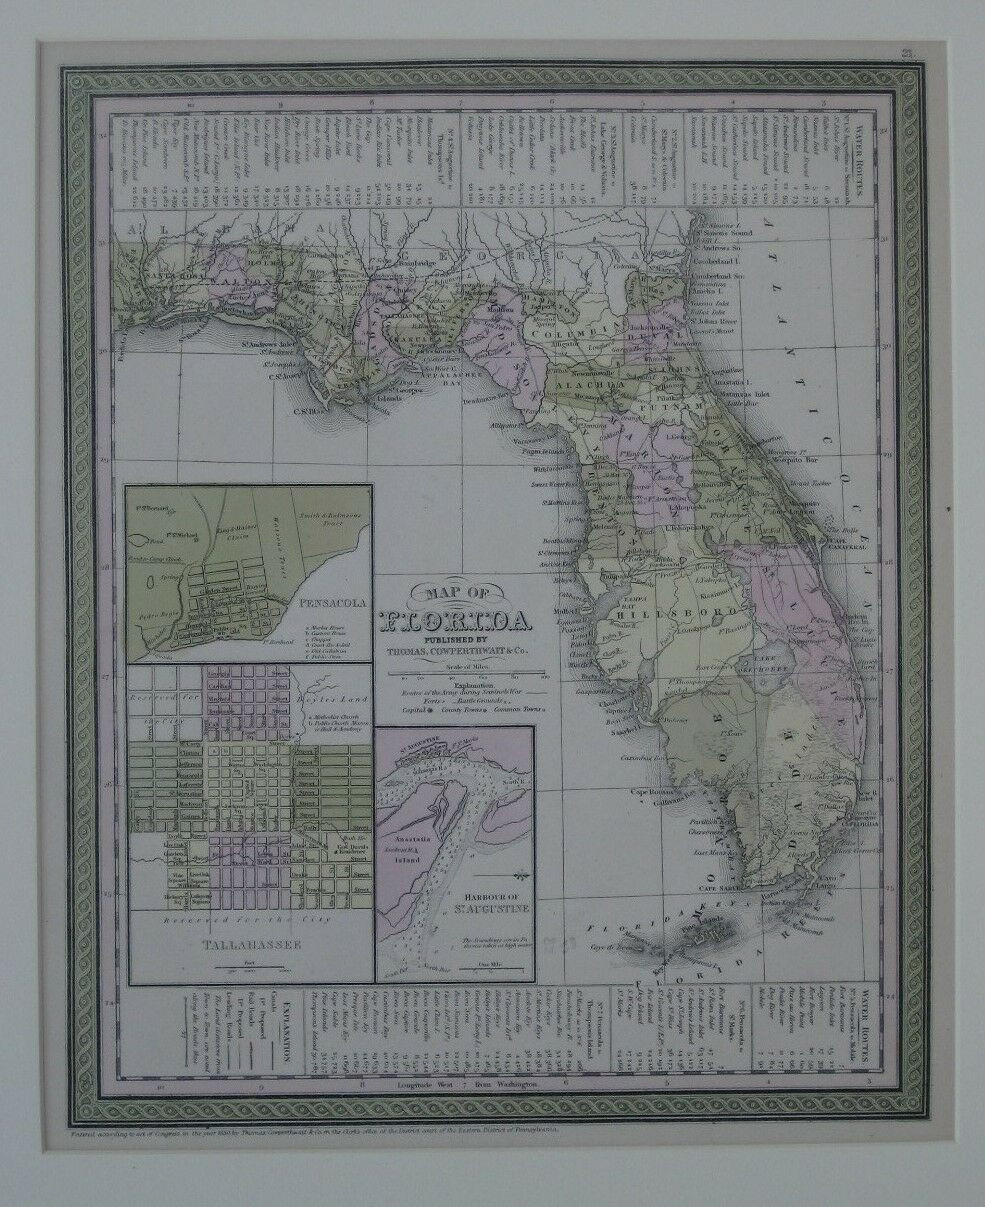 1850 antique map of Florida, in original hand color by county, with decorative ribbon border, printed more than 165 years ago.